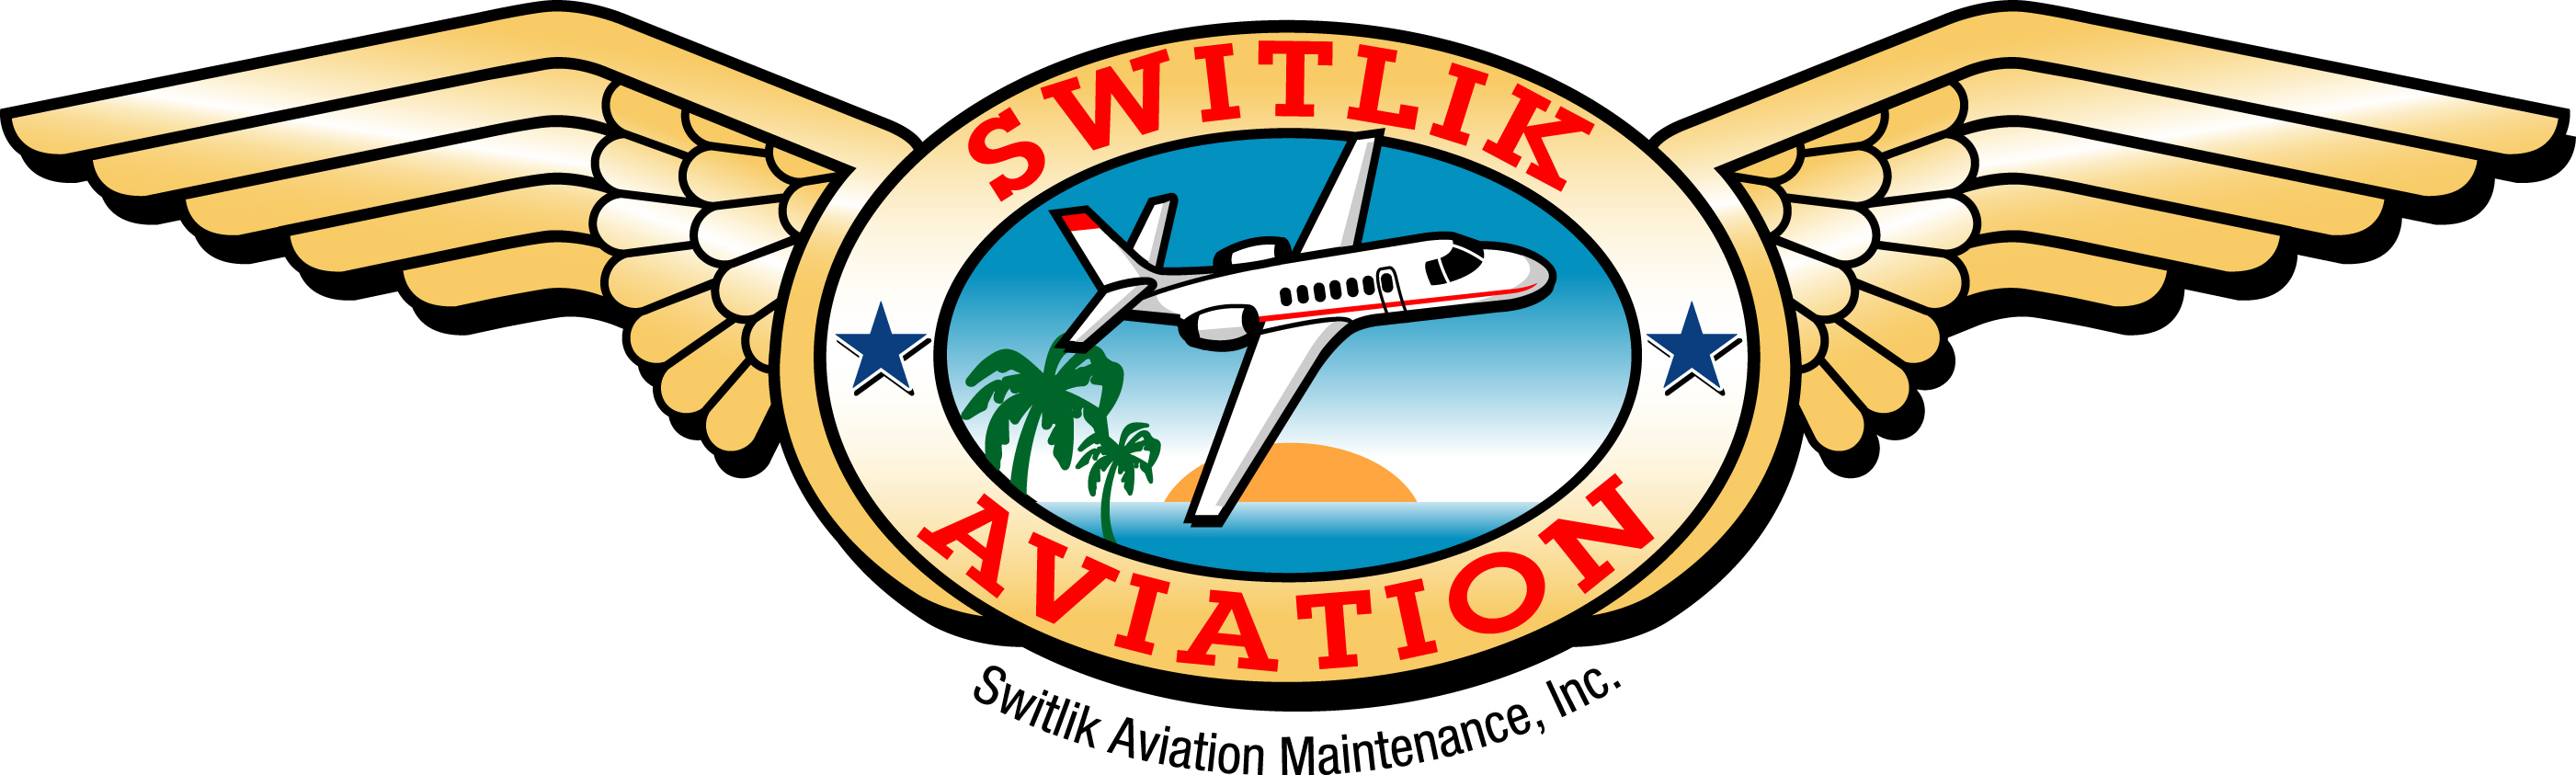 Switlik Aviation Maintenance Logo